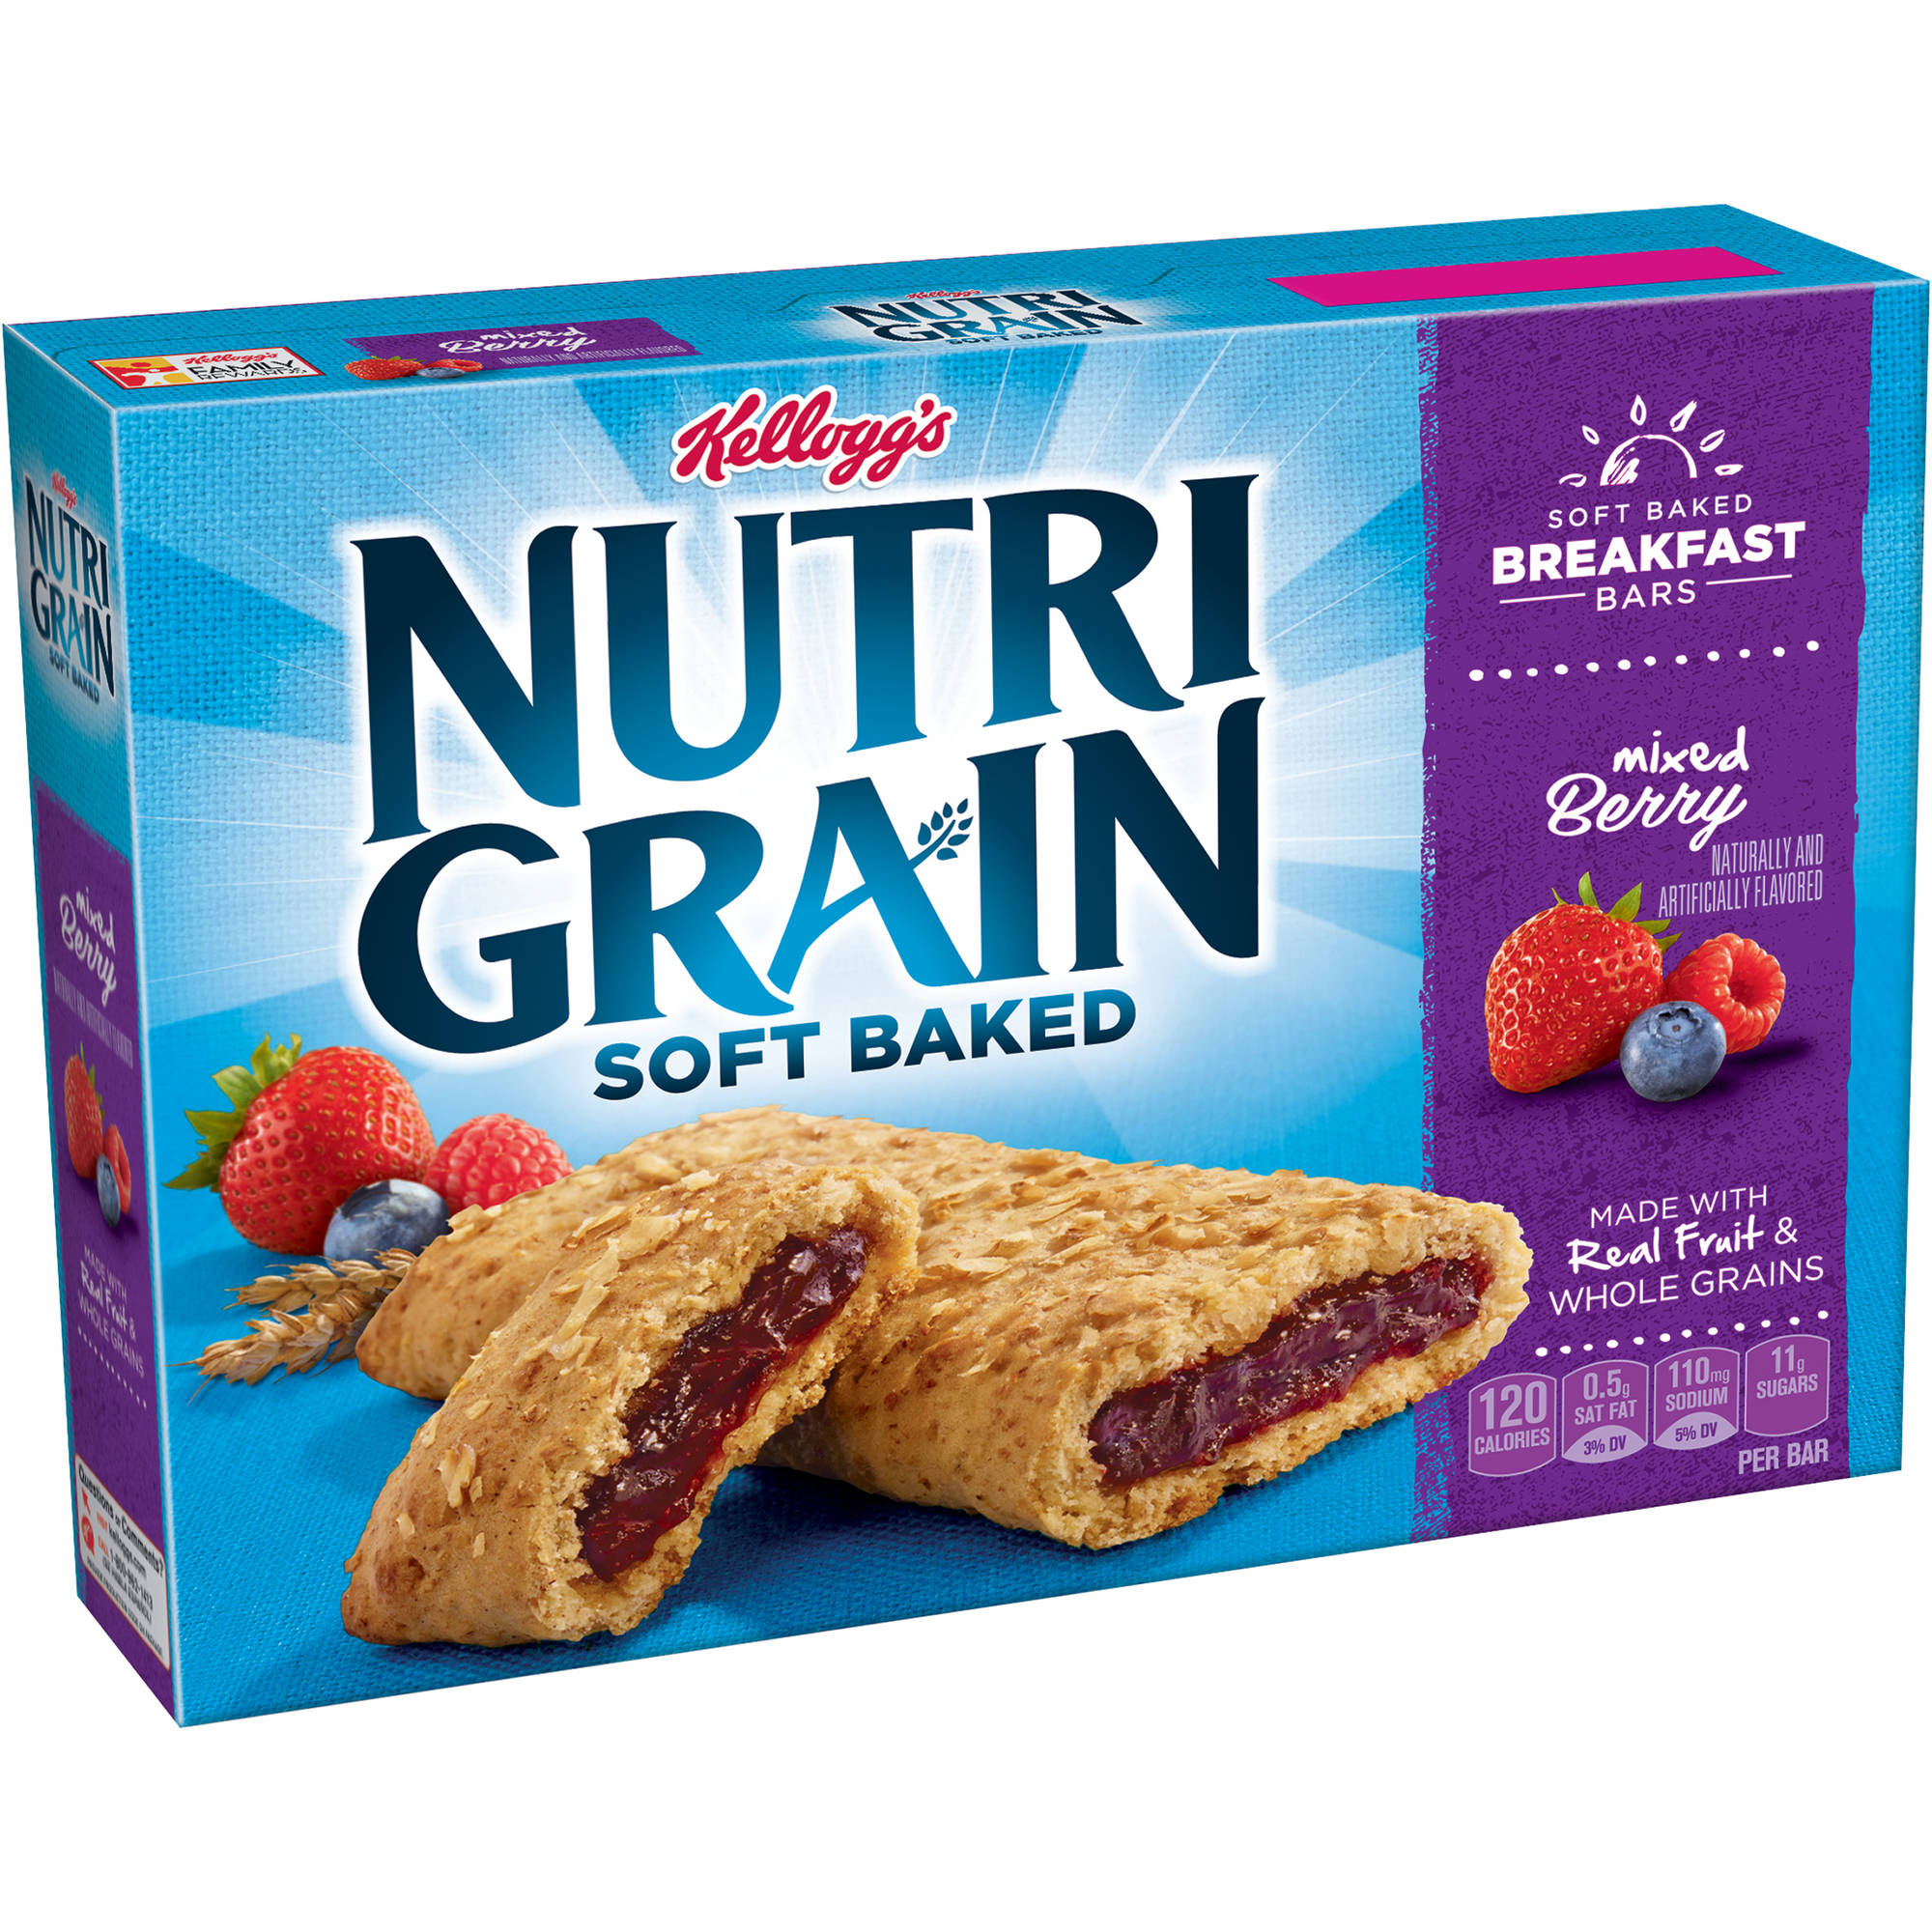 Kellogg's Nutri-Grain Soft Baked Mixed Berry Breakfast Bars, 1.3 oz, 8 count